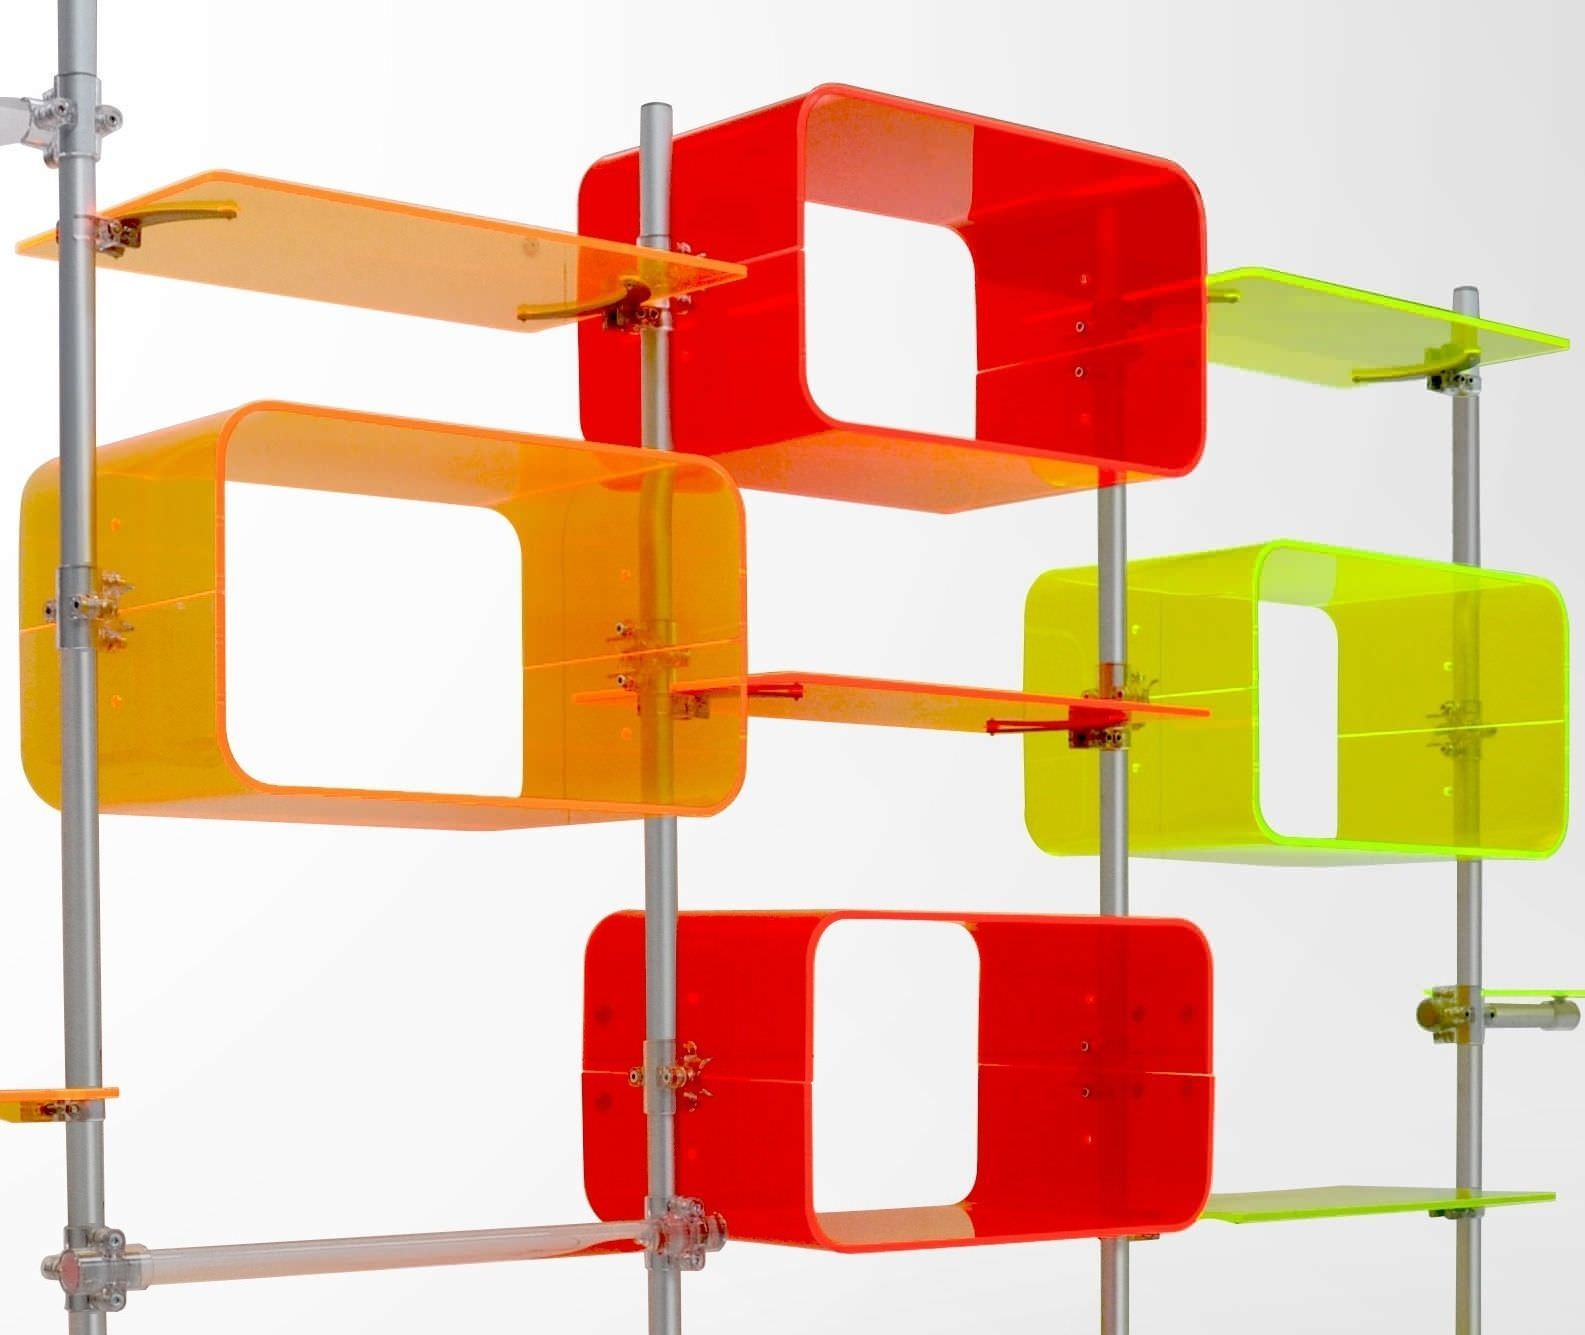 Modular shelf west elm google set design pinterest shelves discover all the information about the product modular shelf original design plastic fluoshop acrylic paxton and find where you can buy it amipublicfo Images